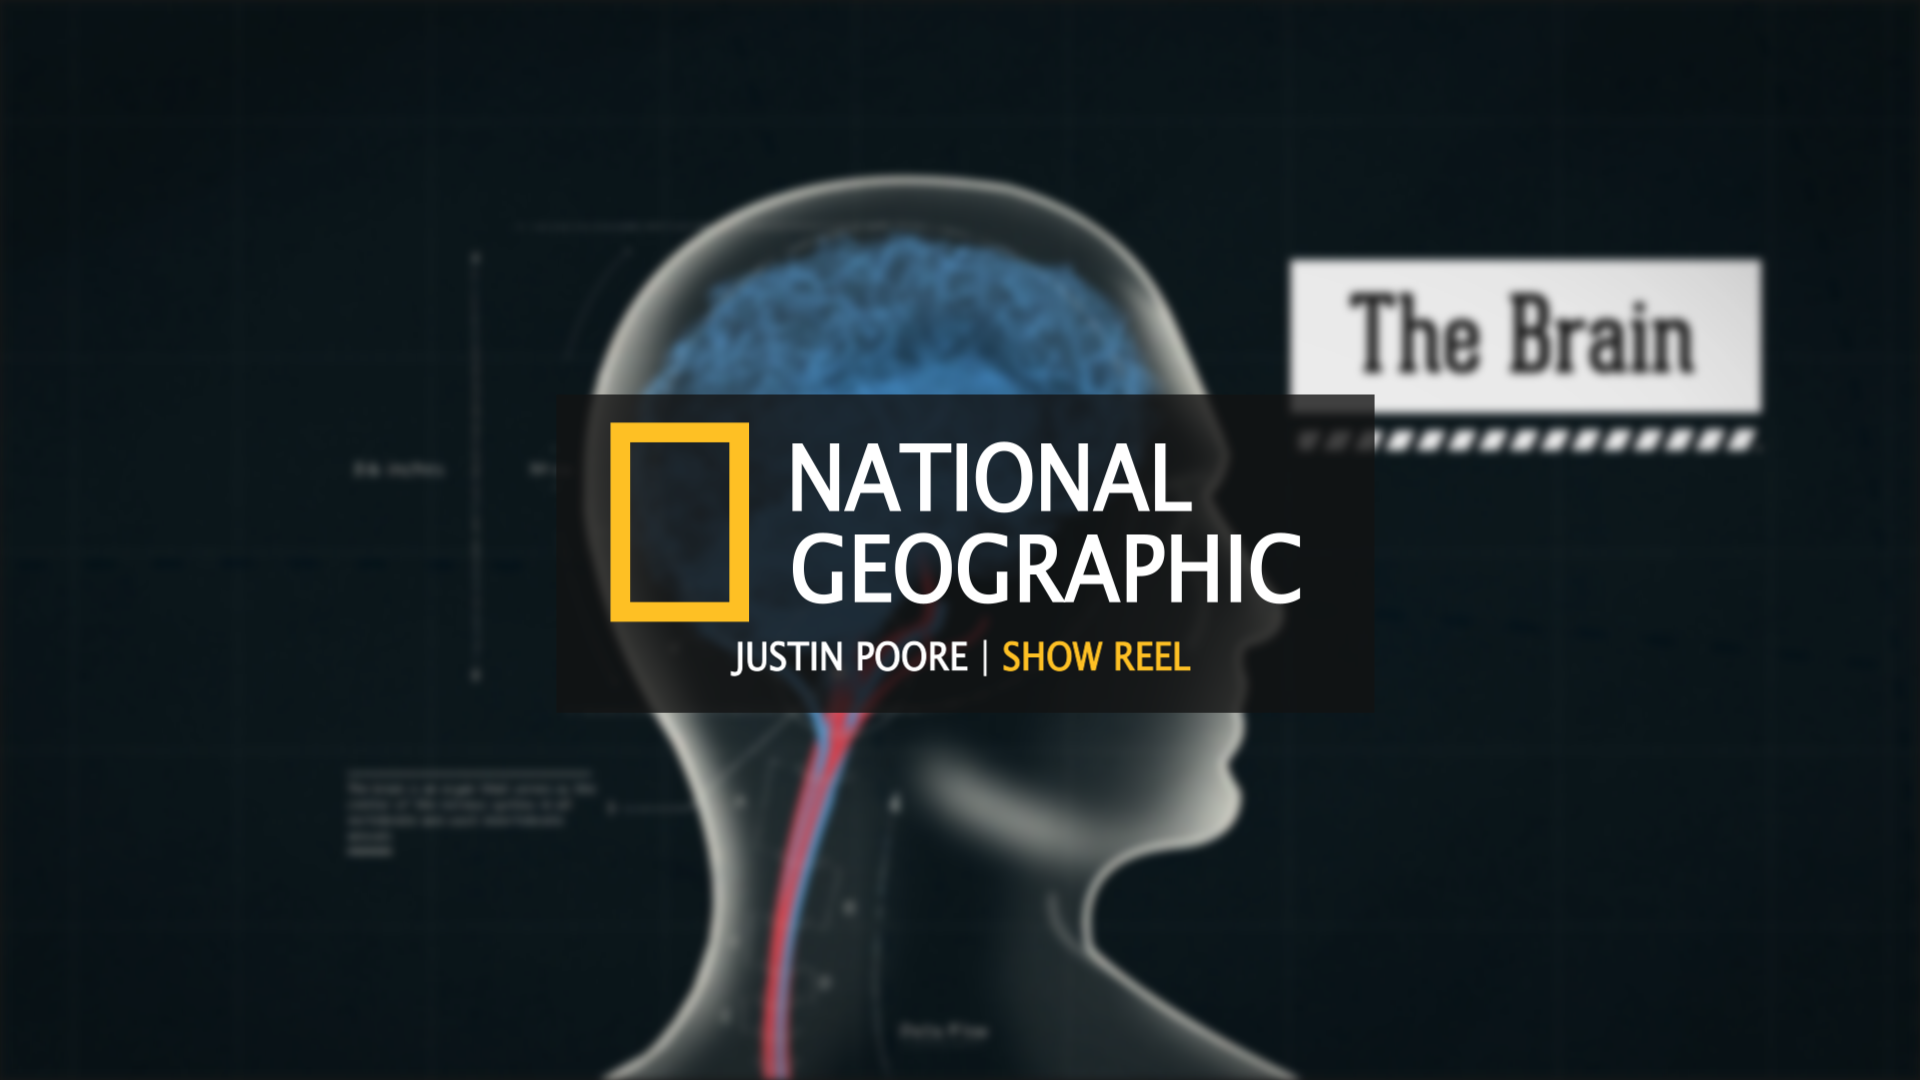 National Geographic Show Reel